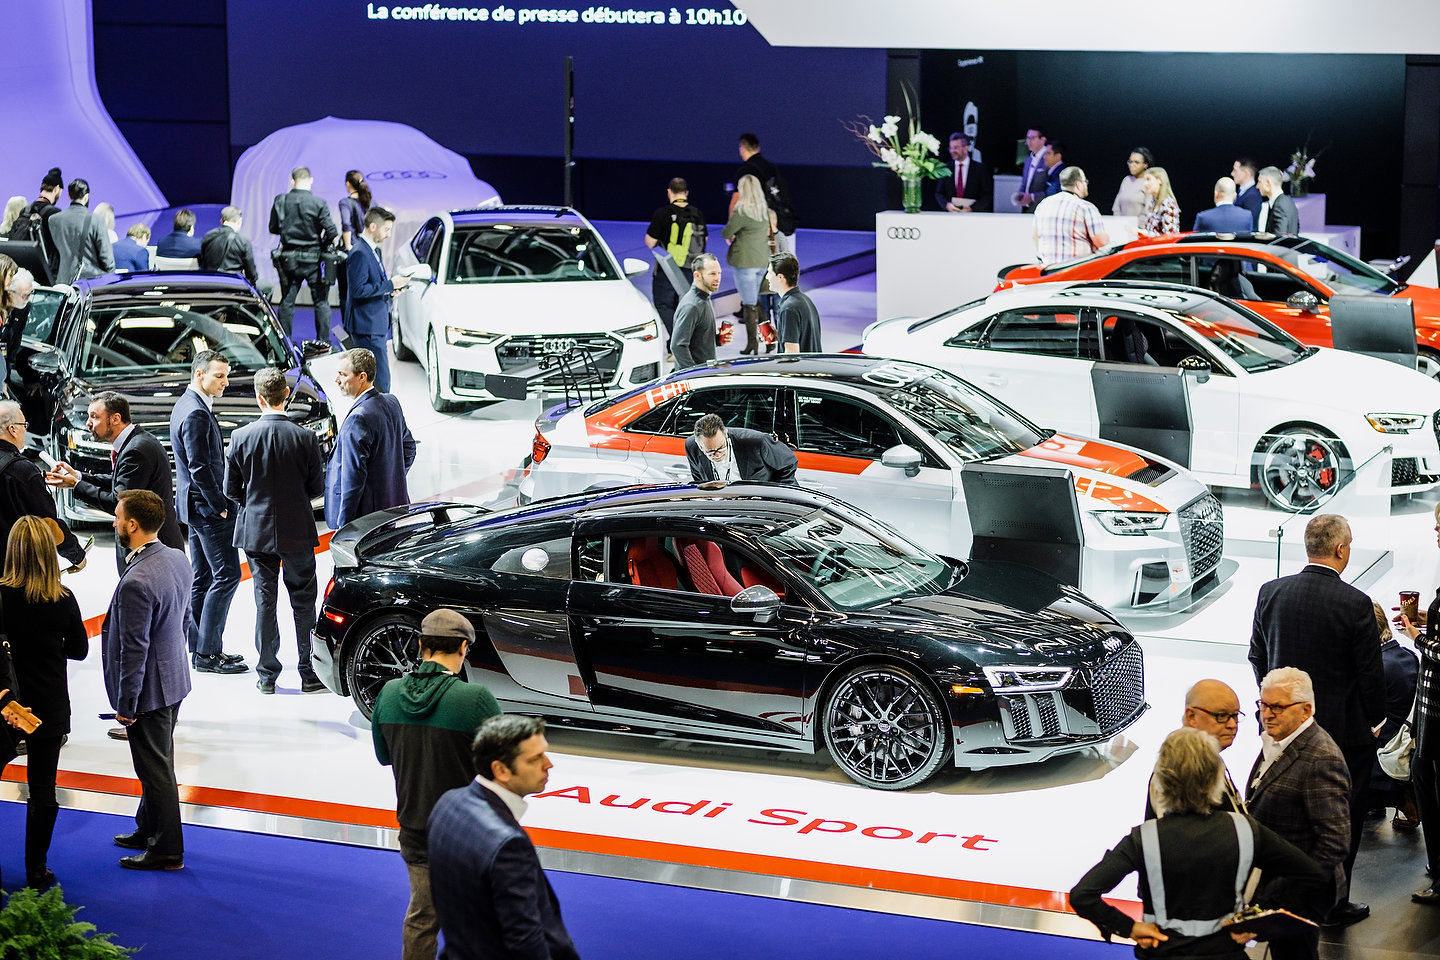 Audi booth | Photo: Olivier Delorme